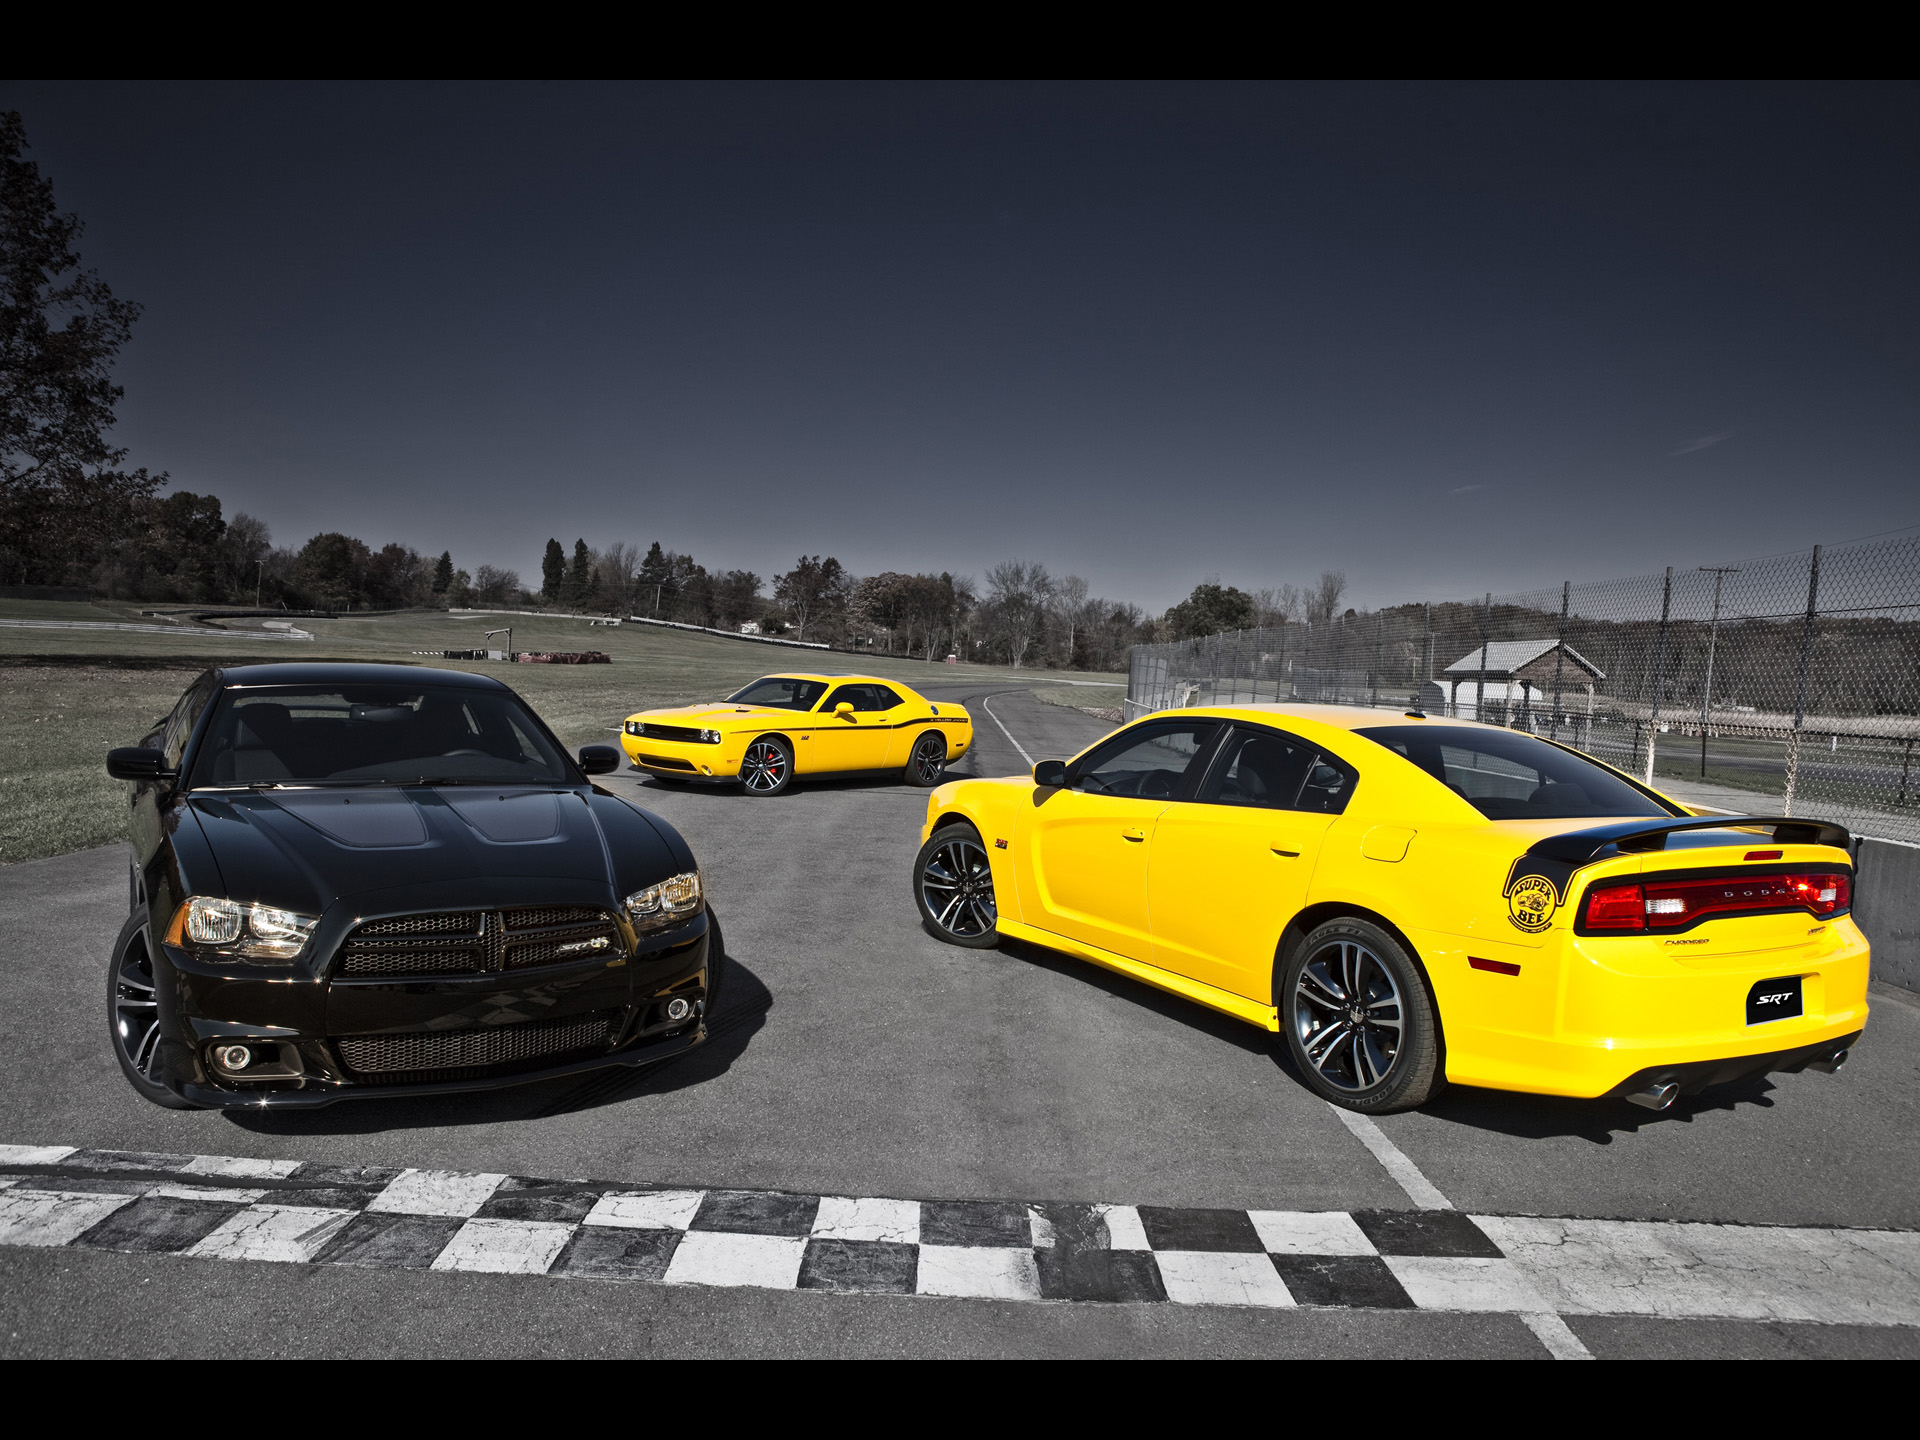 Dodge Challenger SRT8 392 Yellow Jacket   Trio   1920x1440   Wallpaper 1920x1440